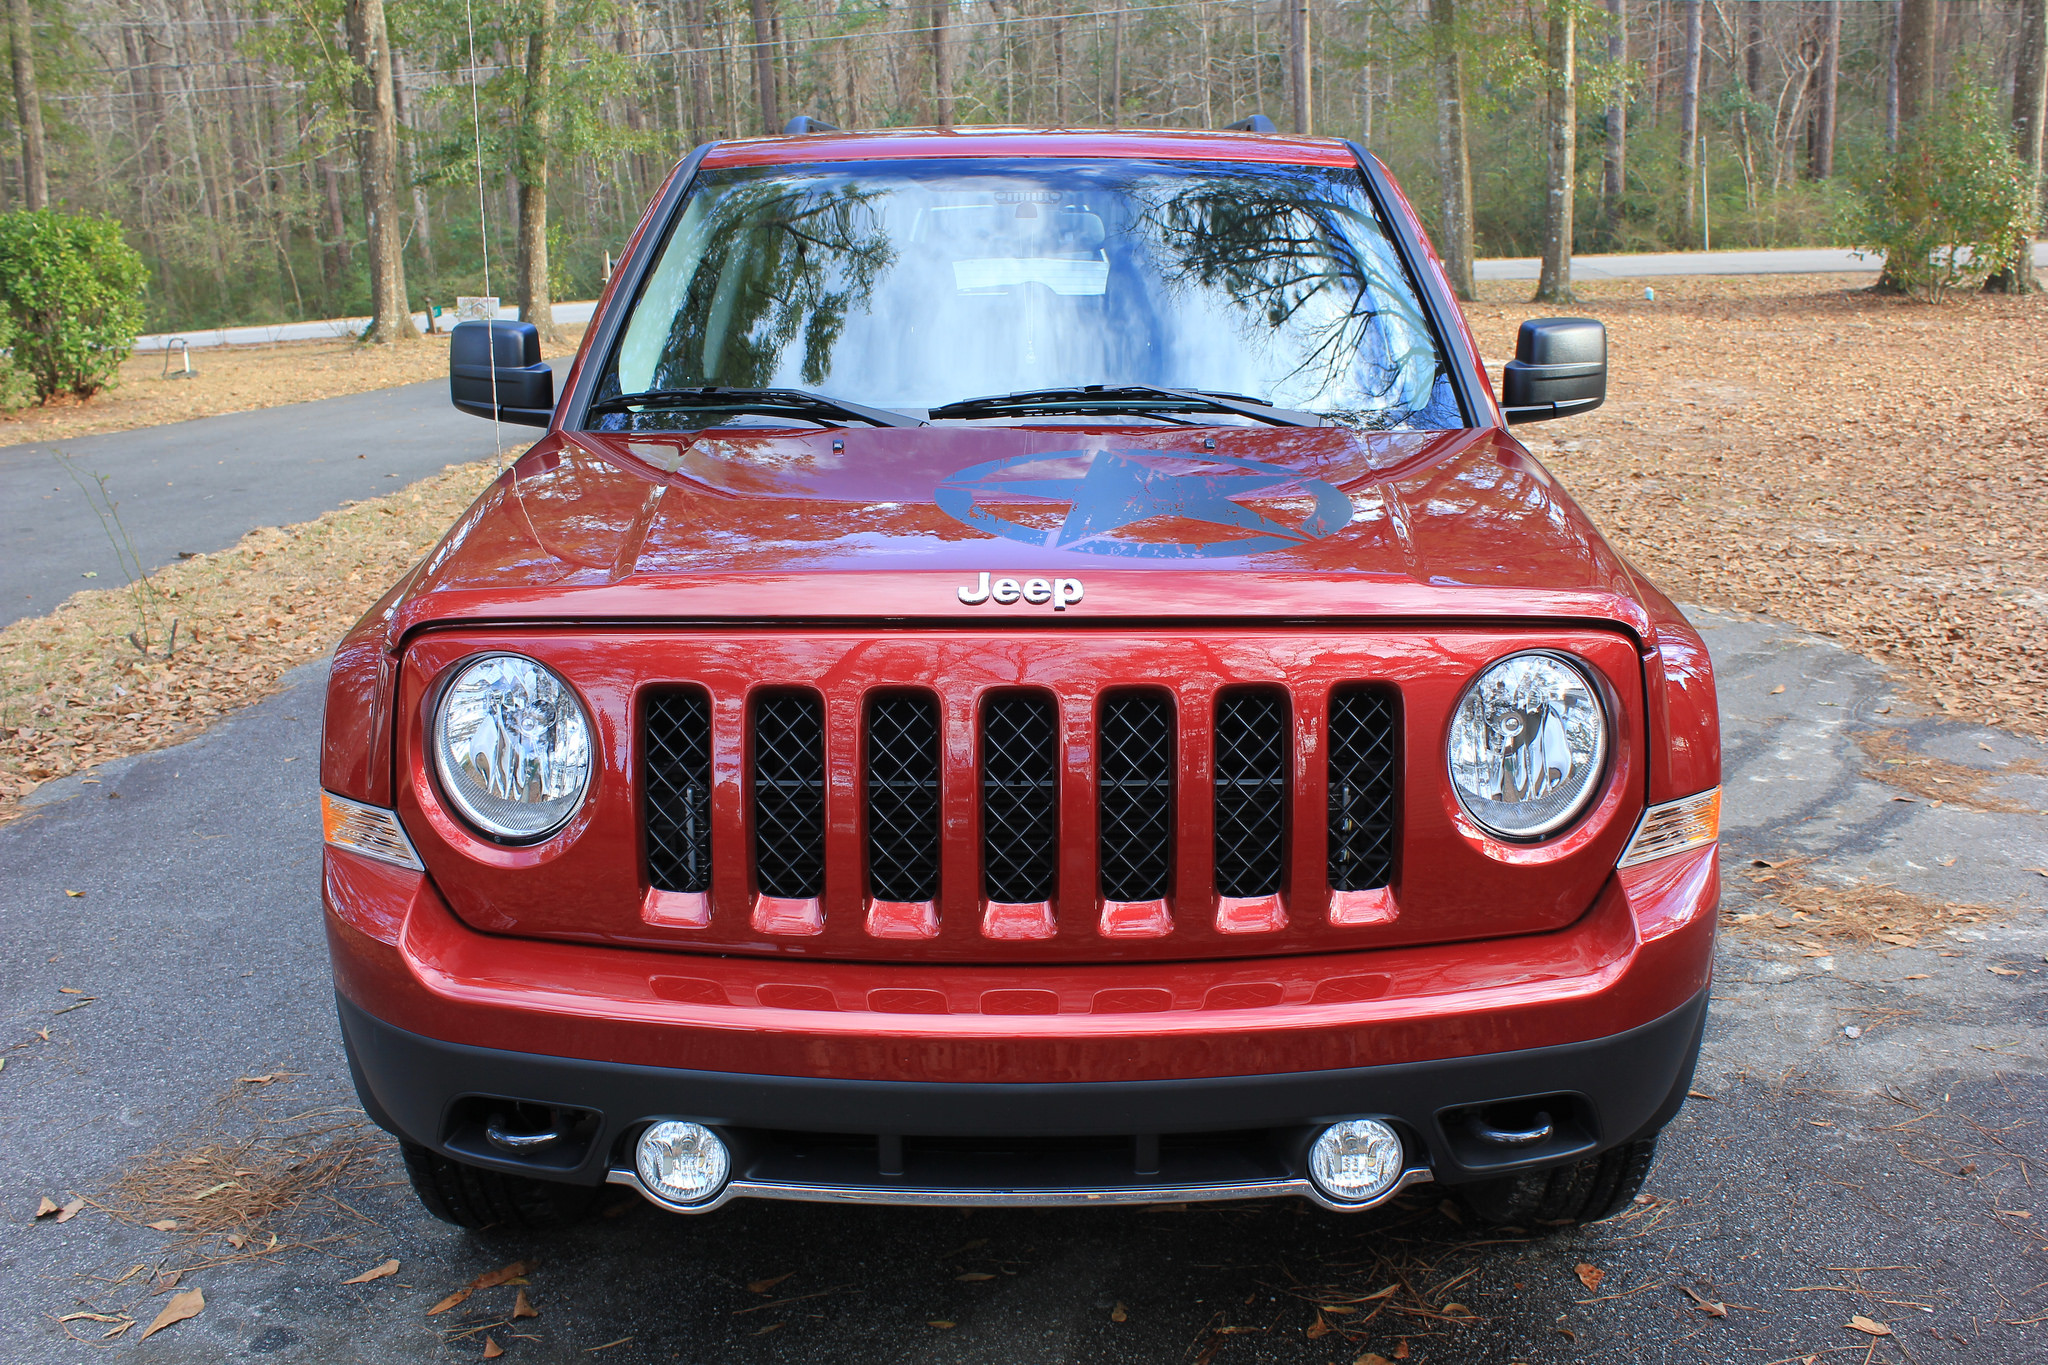 2017 jeep patriot recalls and problems - HD 2048×1365